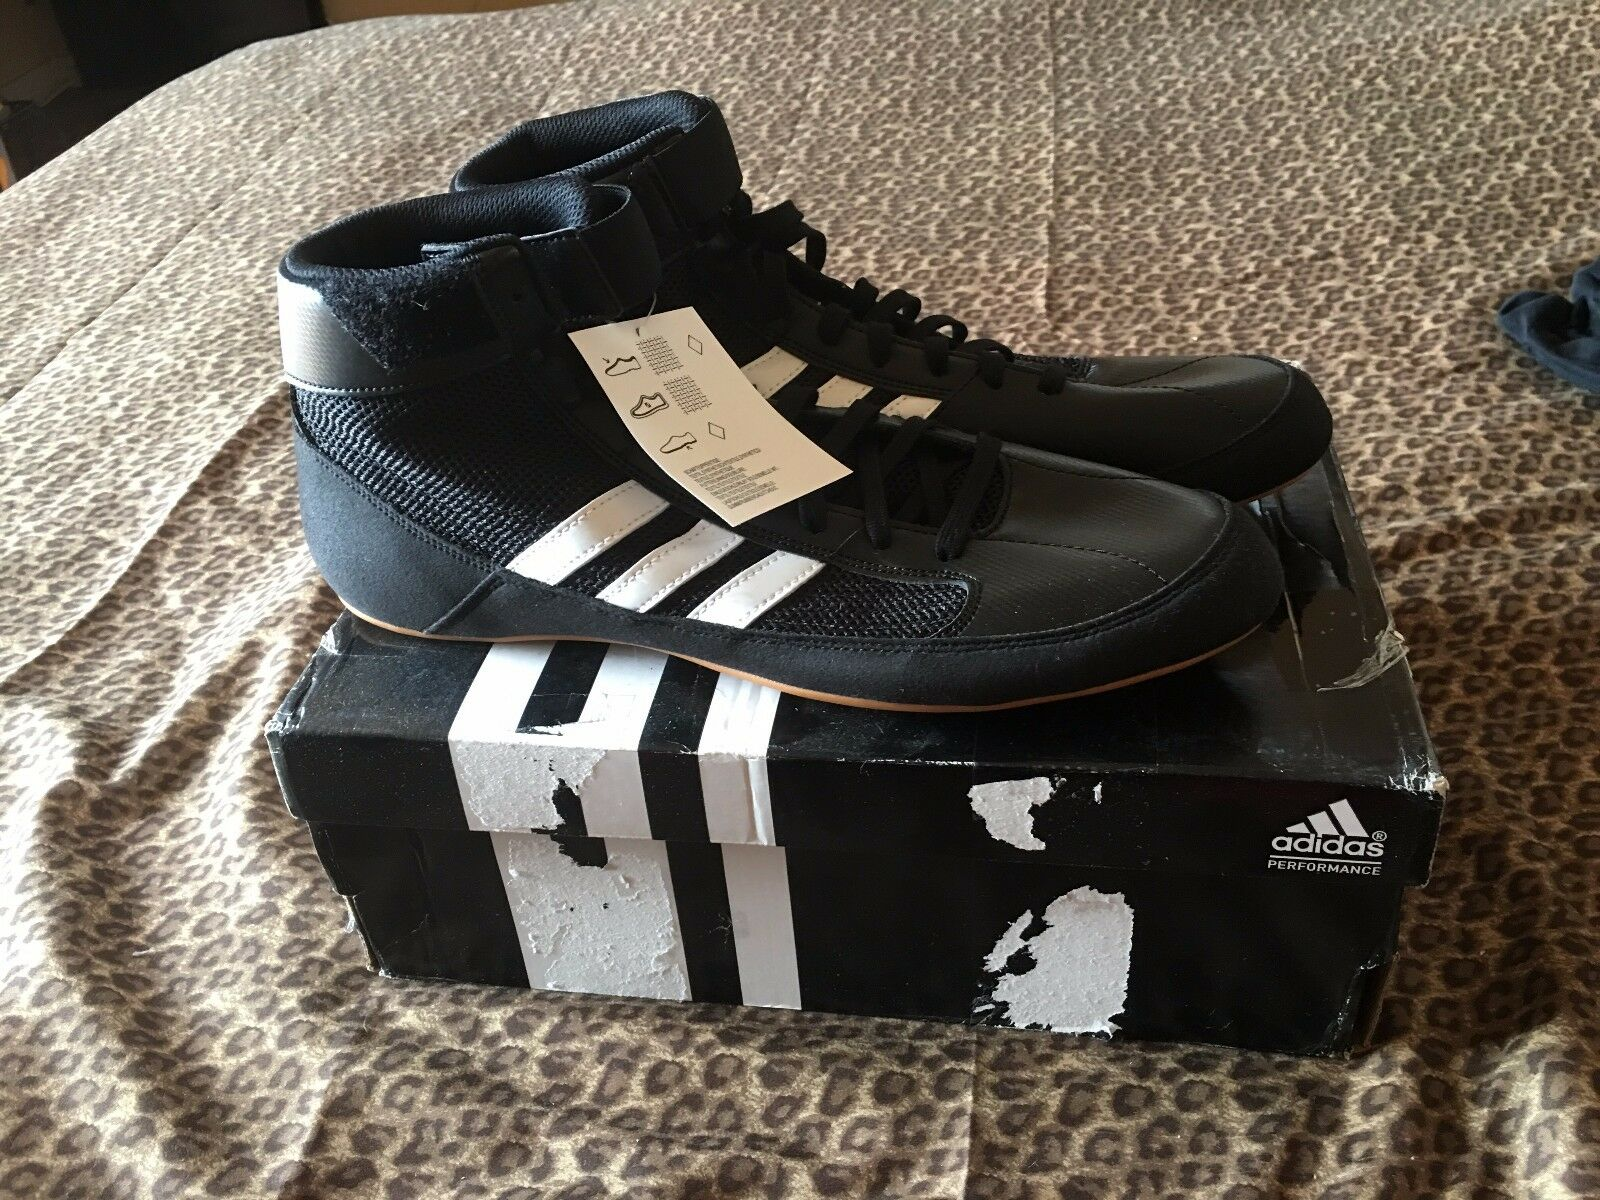 Adidas Black Wrestling shoes Size 11- Brand New In Box